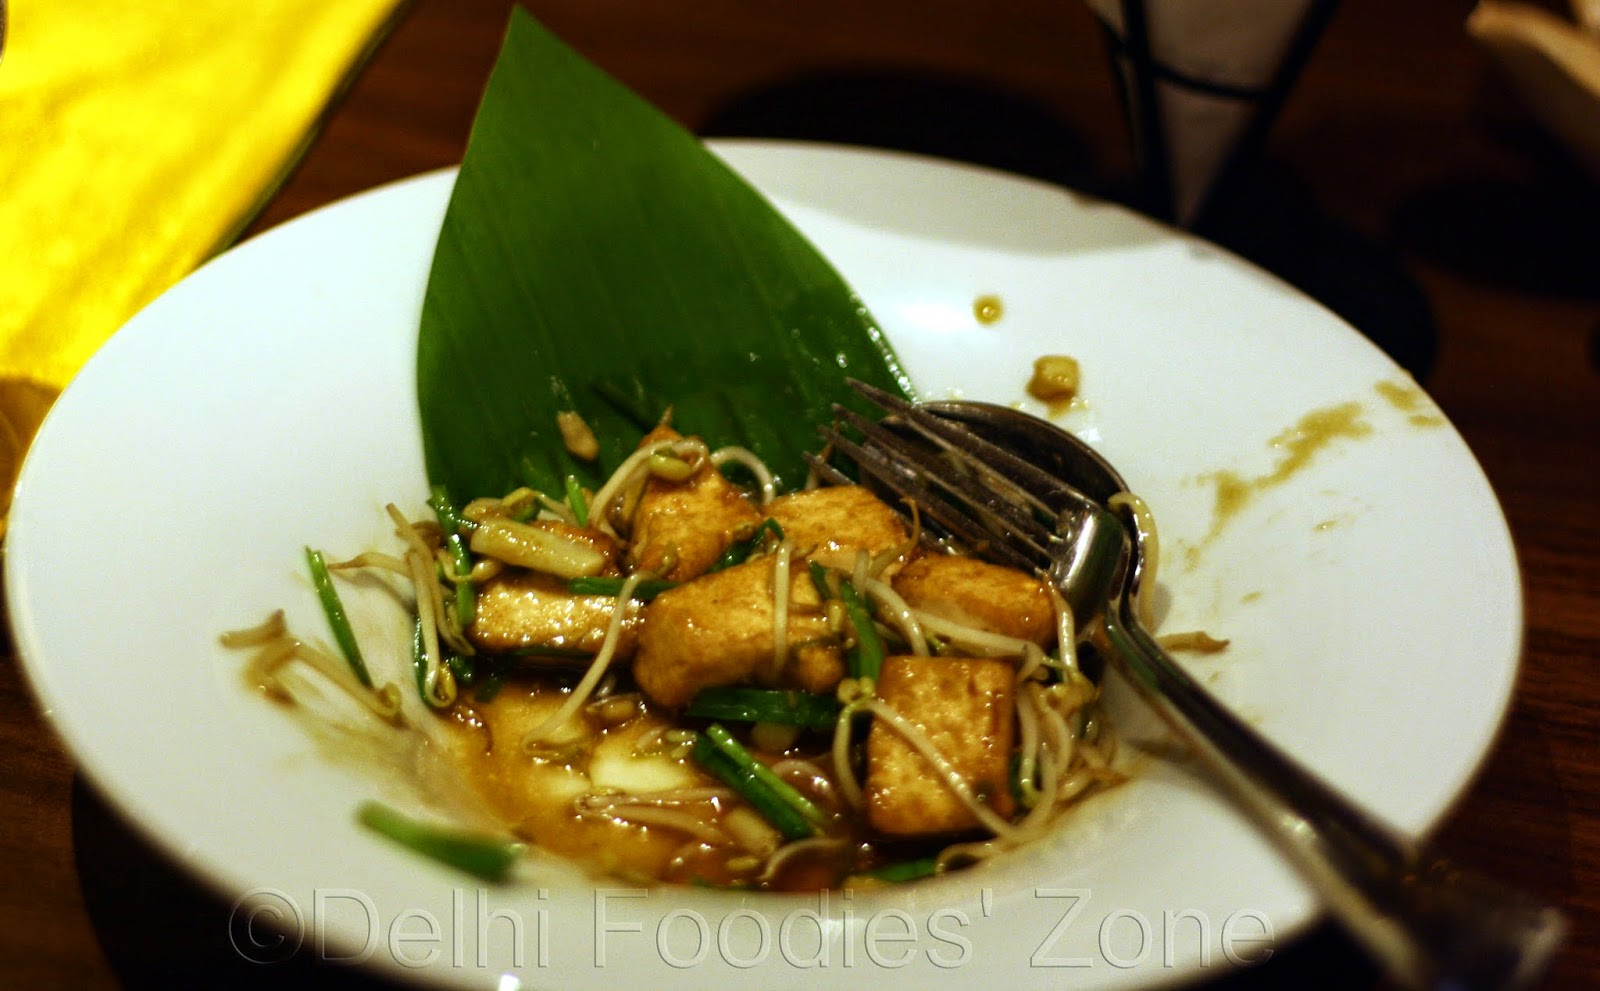 Phad-Tuea-Hrong-Wok-fried-Tofu-Bean-sprout-Chives-soya-sauce-delhi-foodies-zone-reeta-skeeter